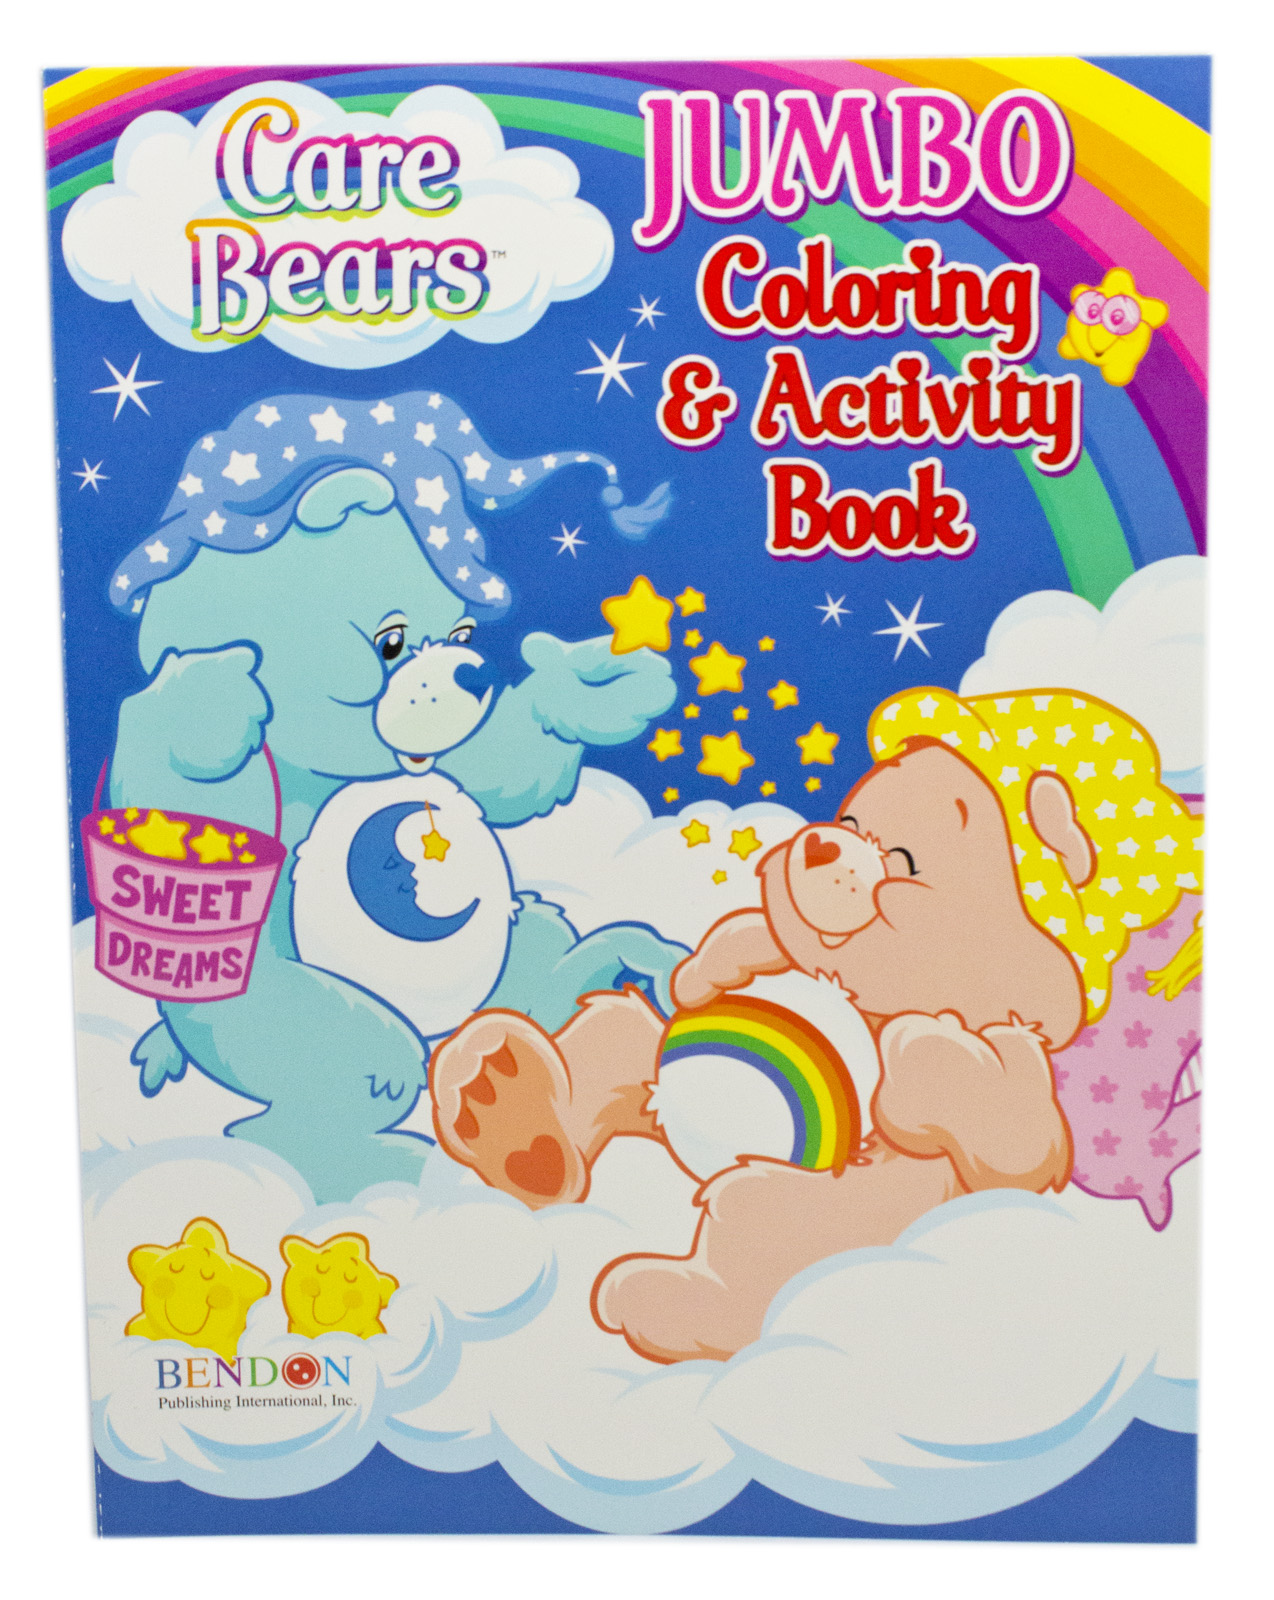 - Care Bears Sweet Dreams On Pillow Clouds Blue Cover Coloring & Activity Book  - Walmart.com - Walmart.com